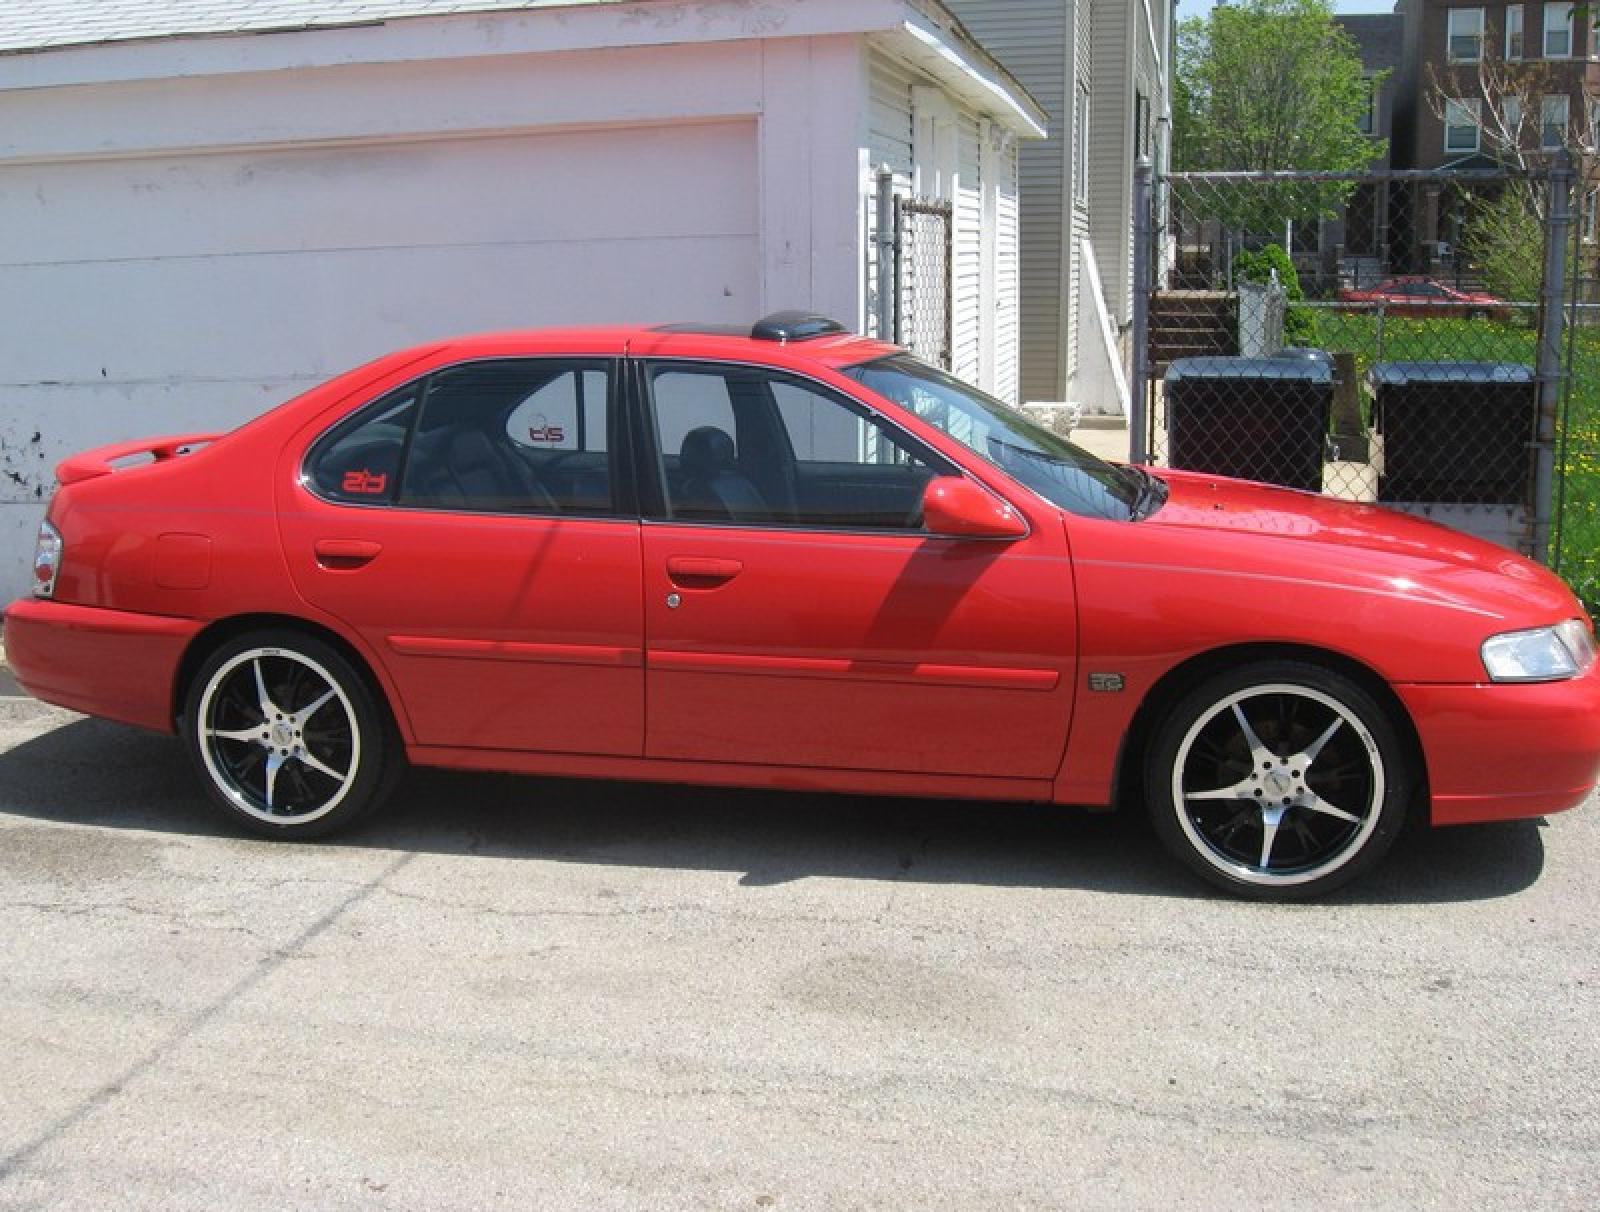 1999 Nissan Altima Information And Photos Zomb Drive